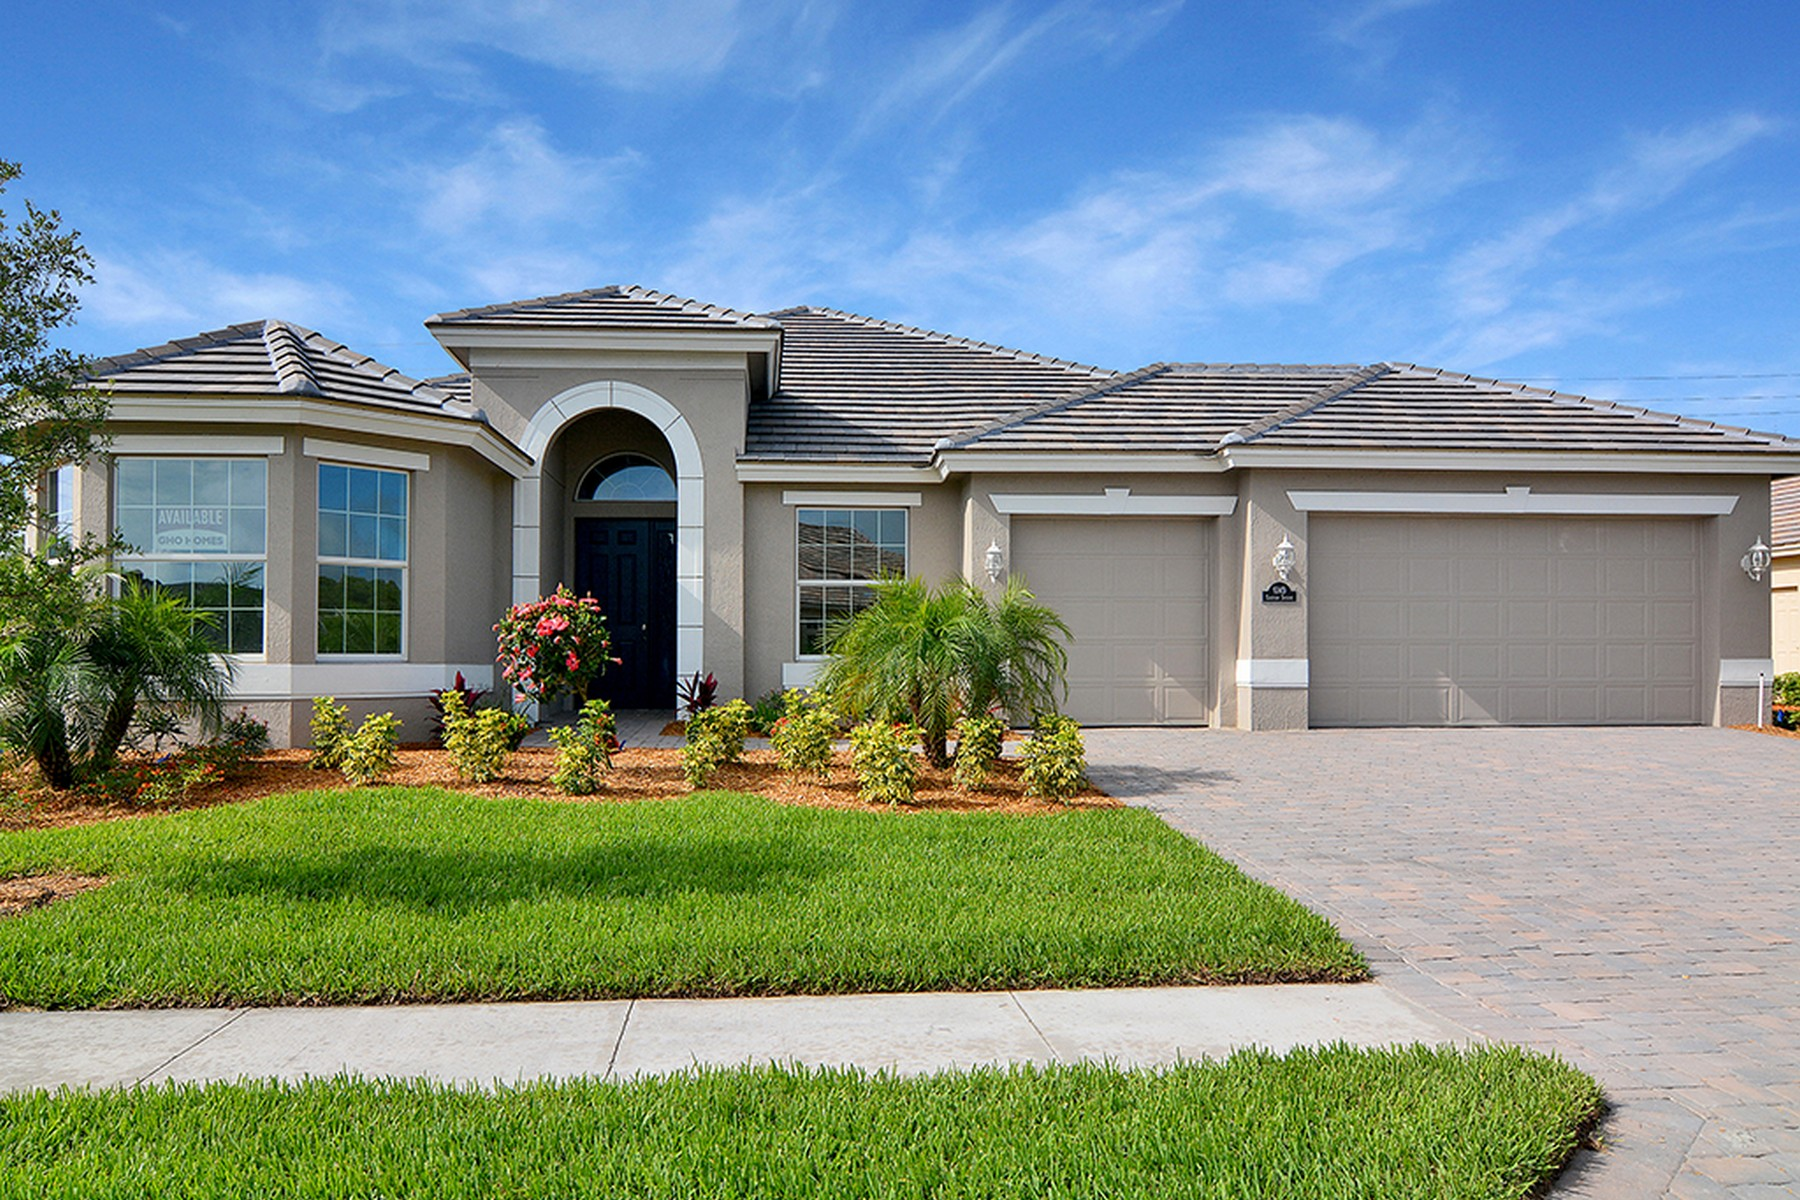 Single Family Home for Sale at Stunning 2BD/2BA+ Den! Ready Fall 2017 6149 Graysen Square Vero Beach, Florida, 32967 United States